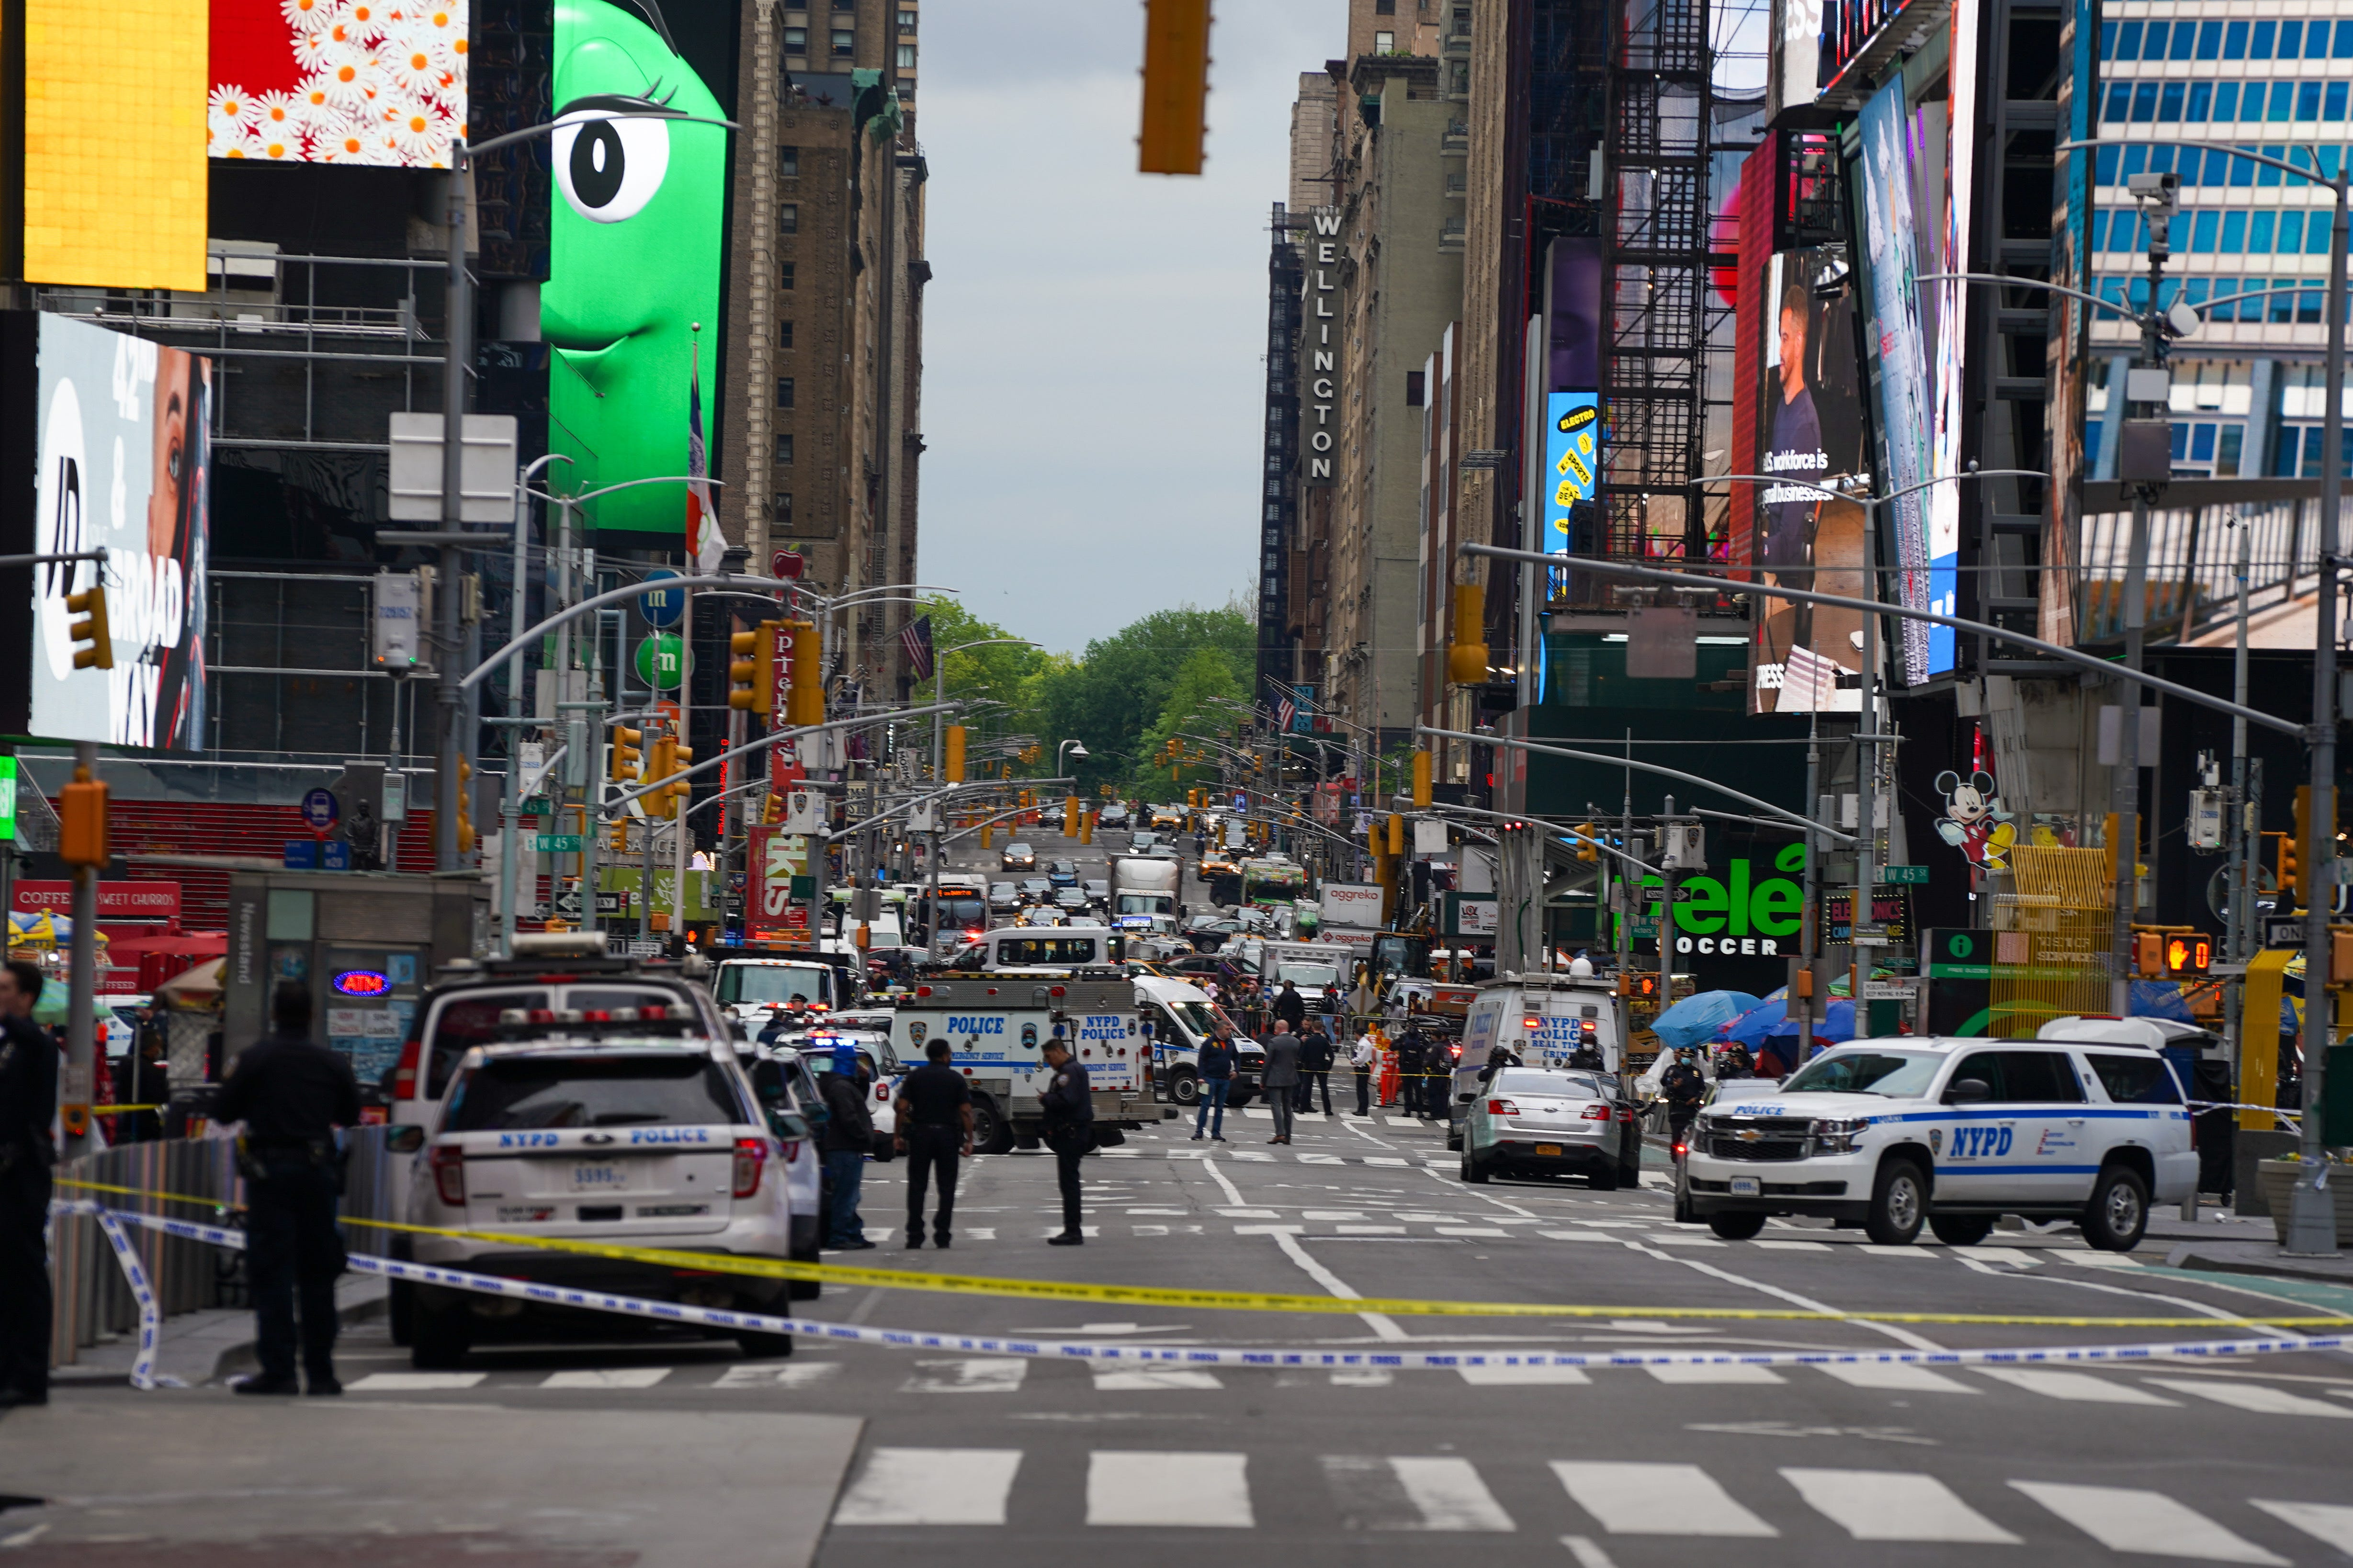 Girl, 2 women wounded in Times Square shooting